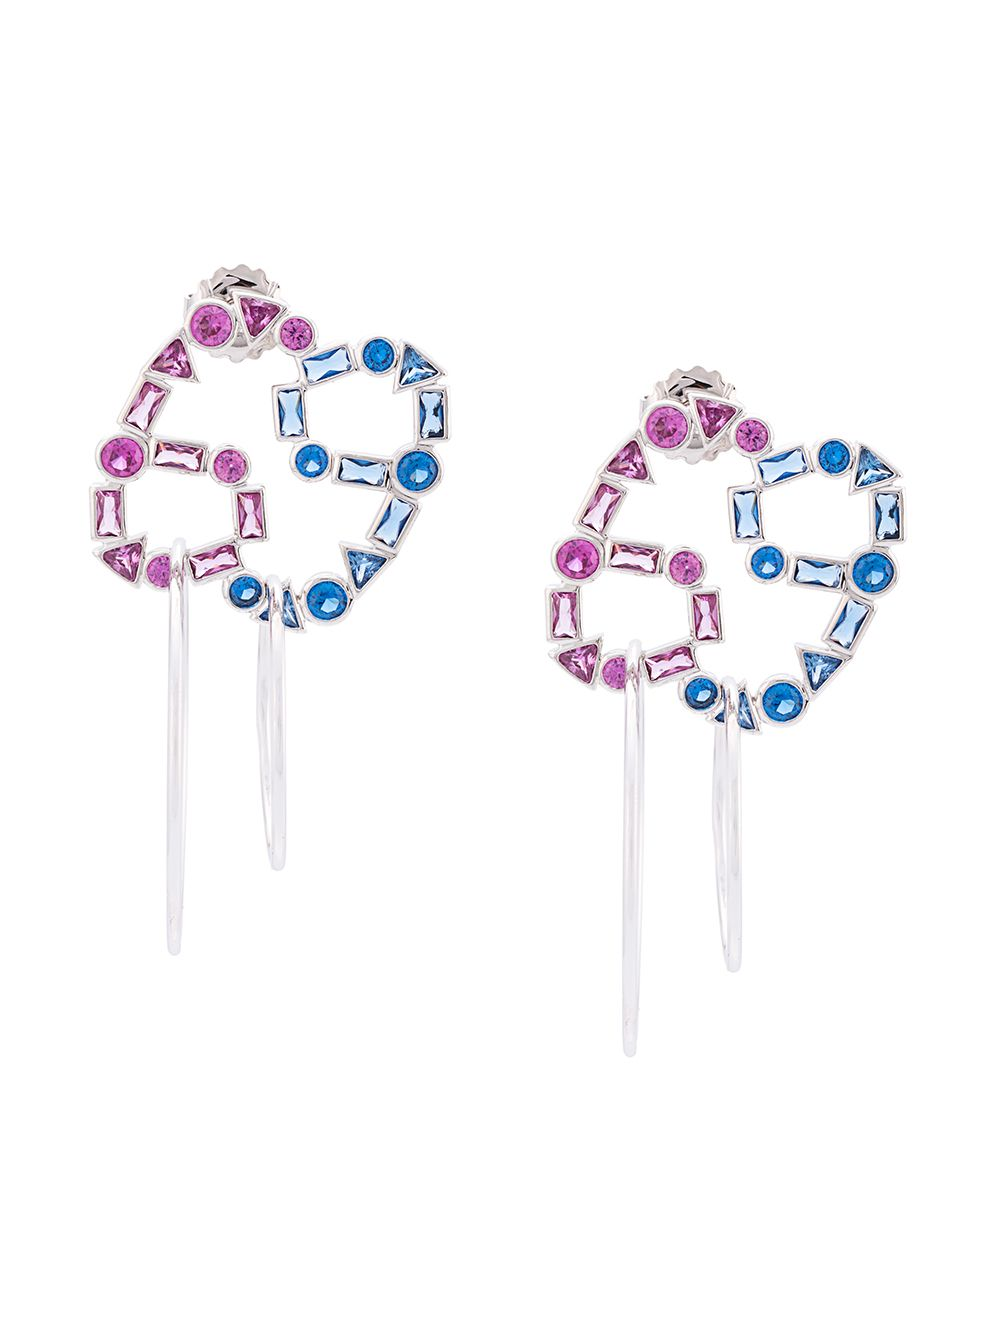 JIWINAIA Crystal 69 Hoop Earrings - 1